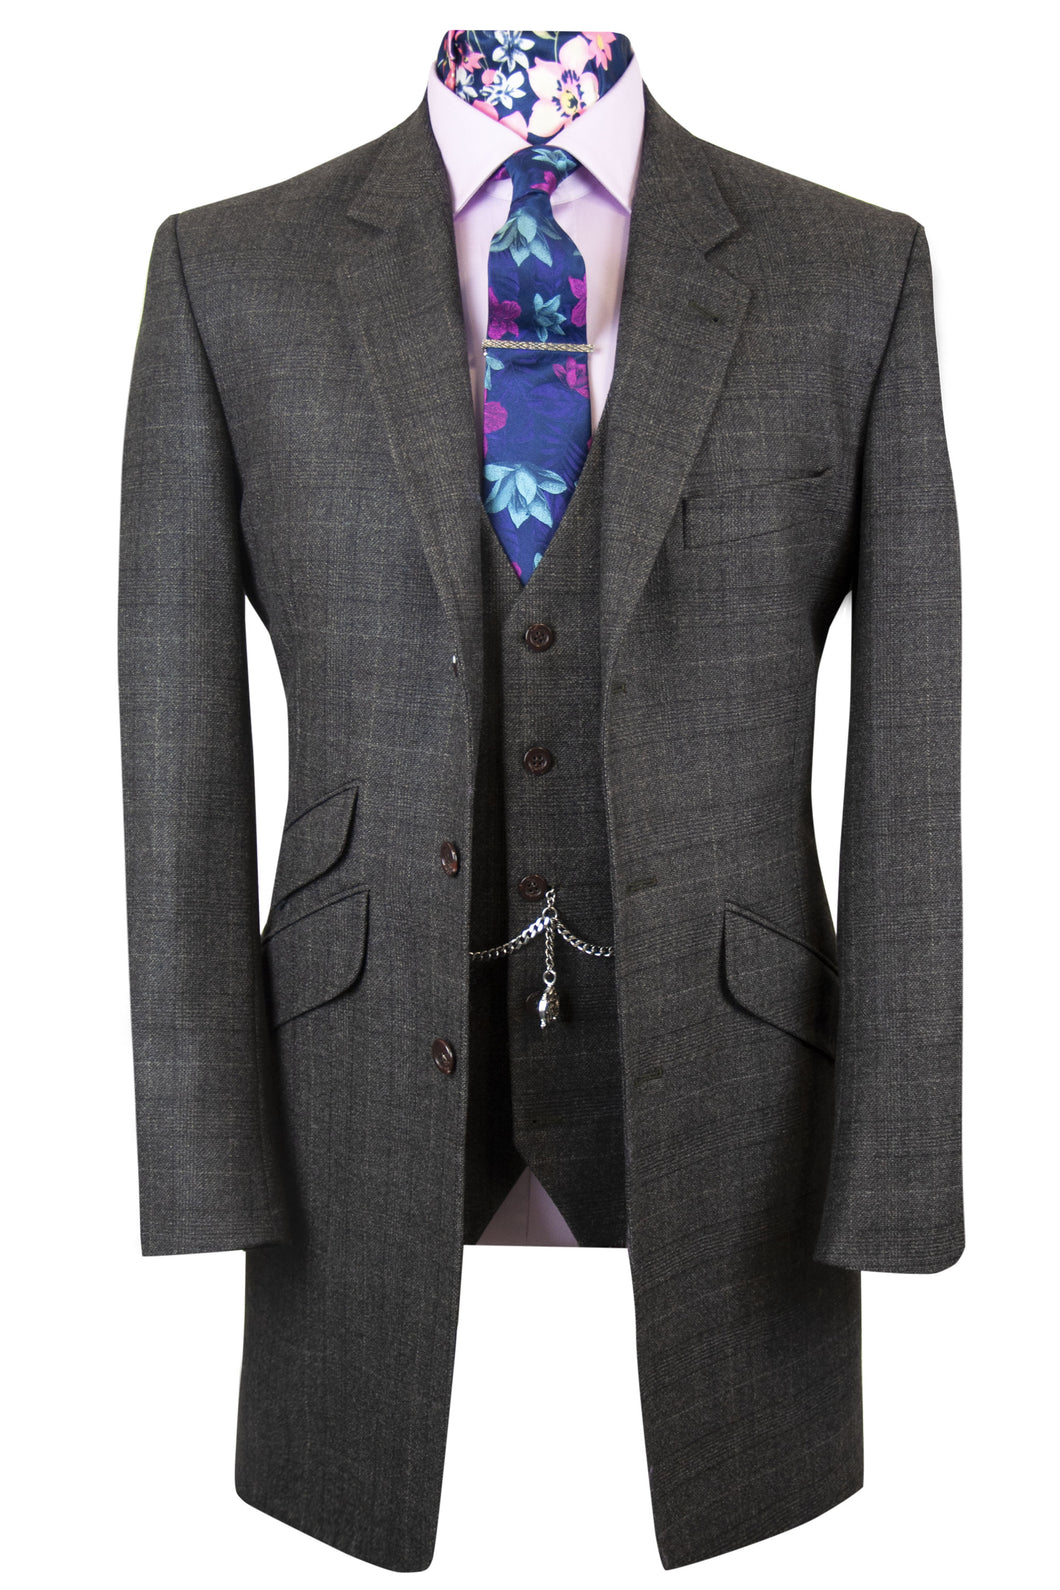 The Bowen Brown Long Jacket with Matching Waistcoat